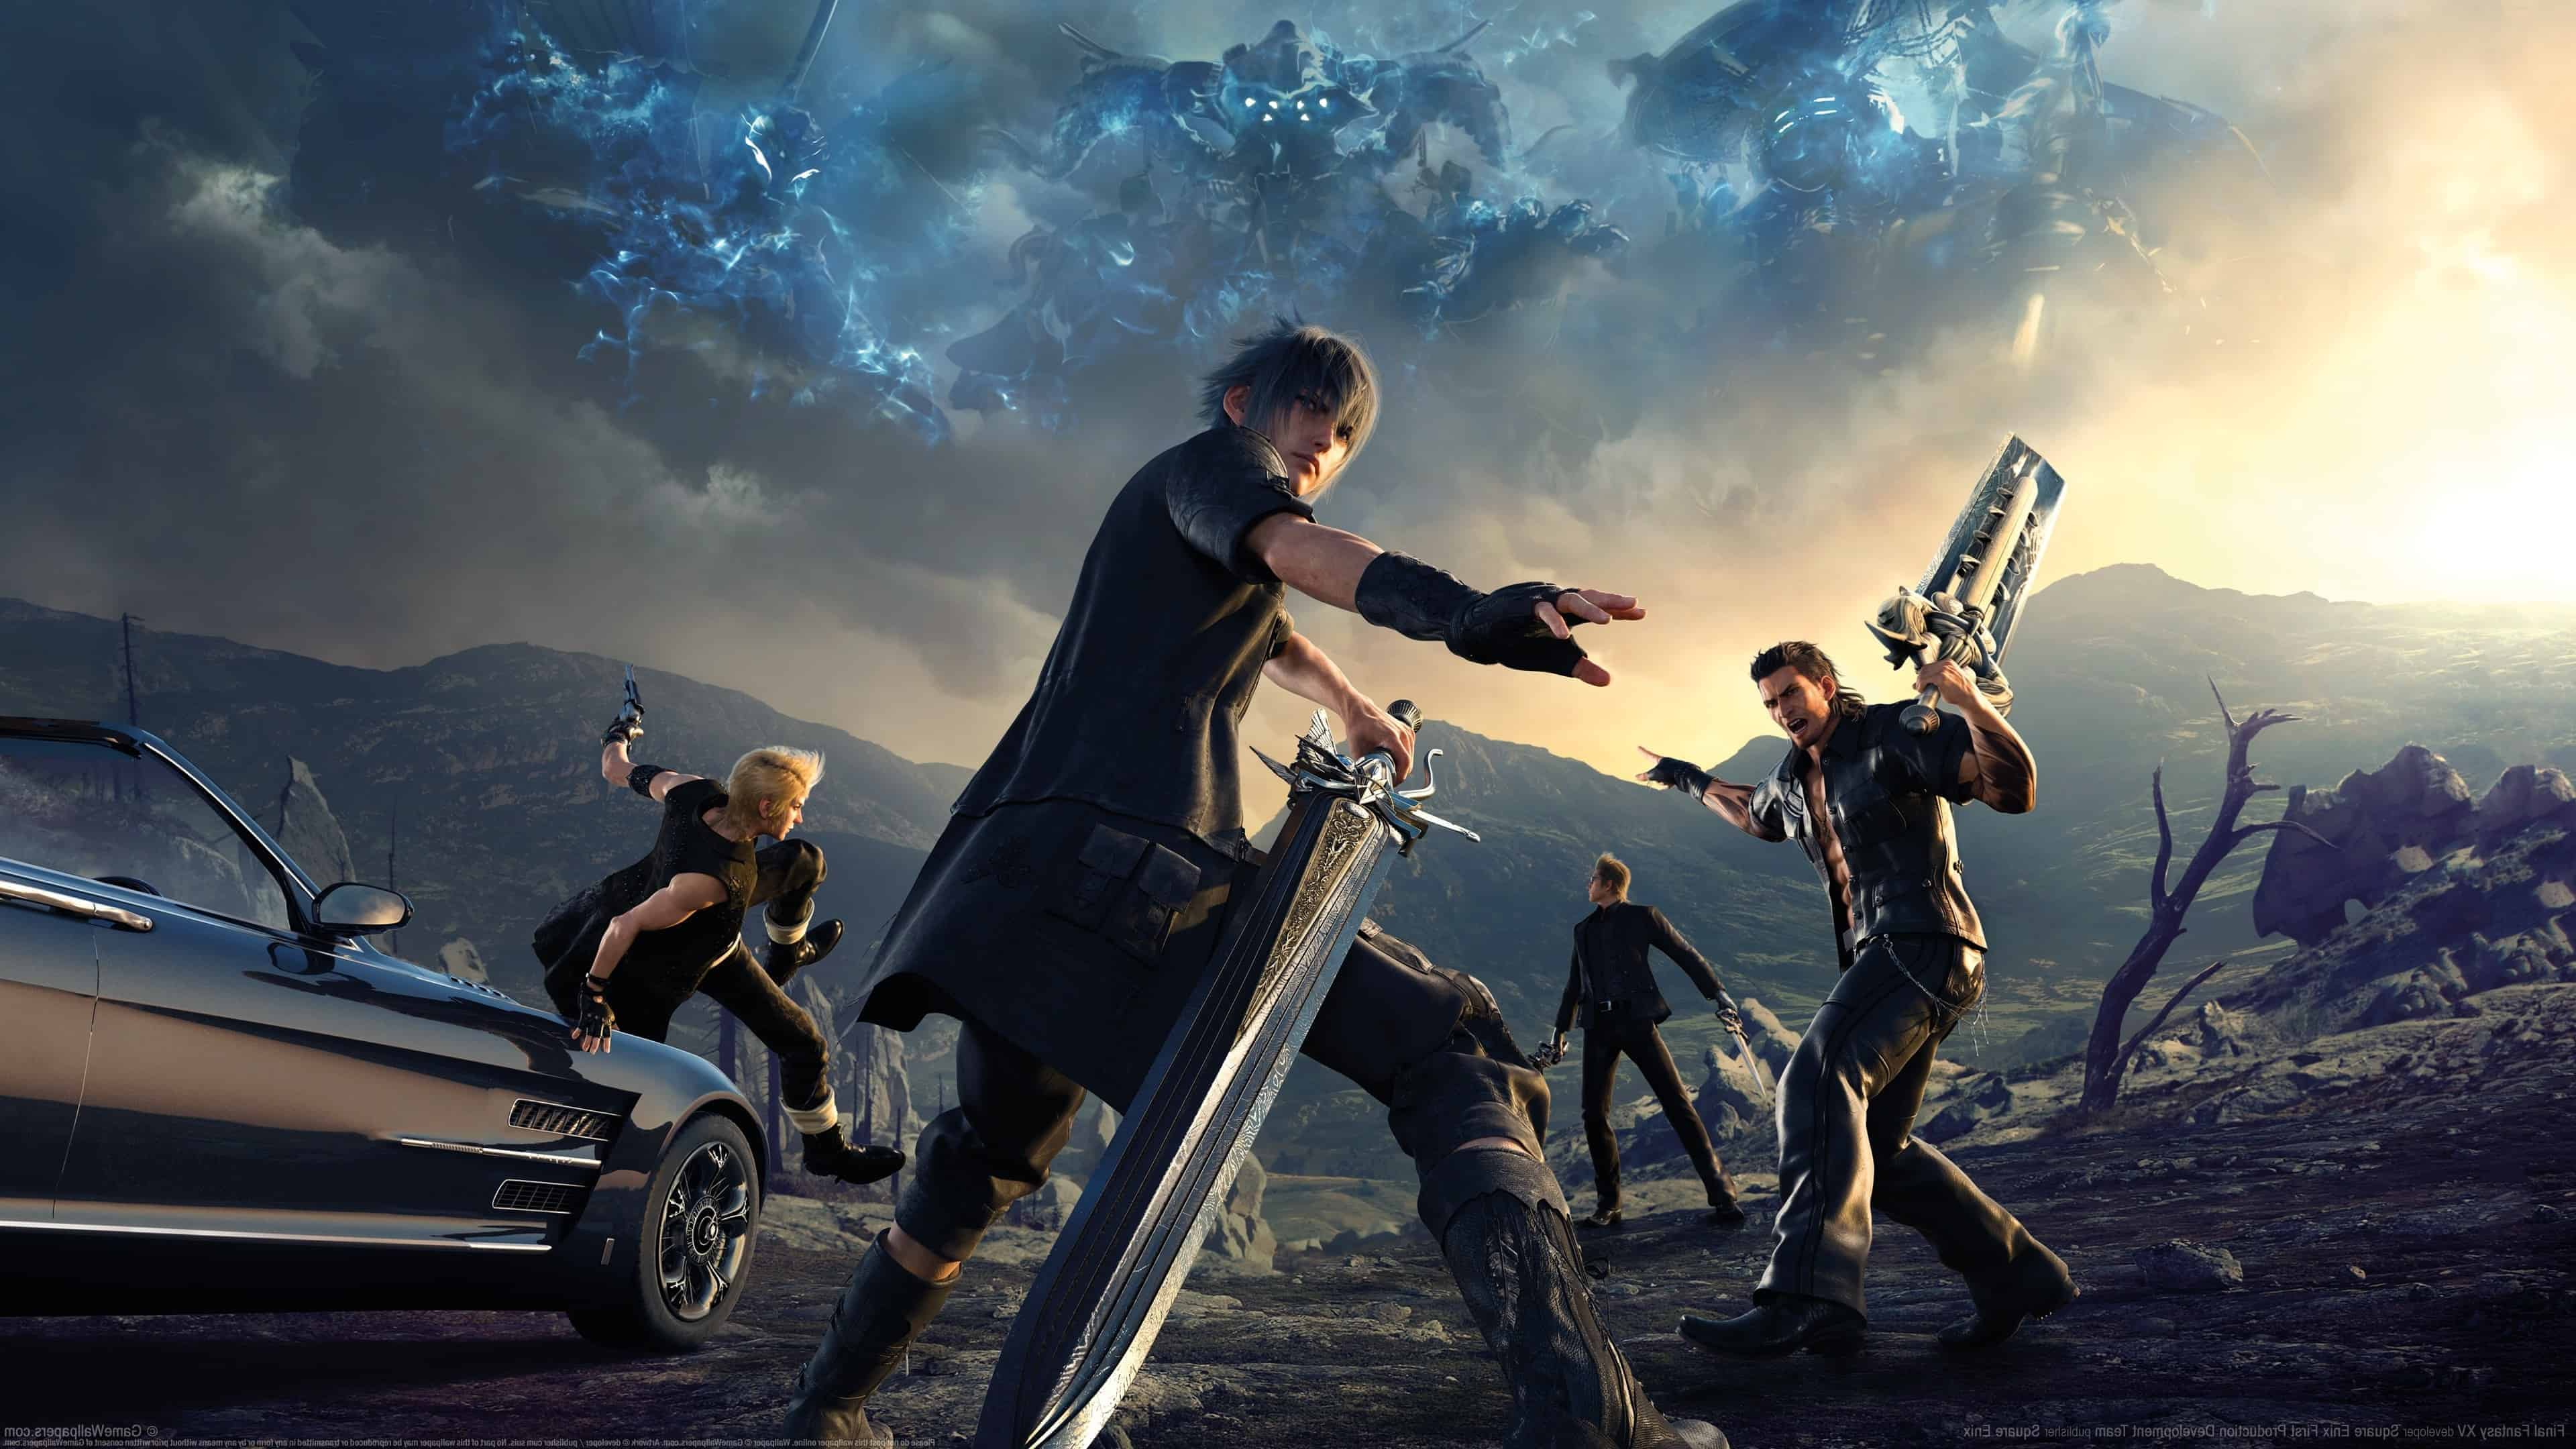 Final Fantasy Xv 4k Ultra Hd Wallpaper: Final Fantasy XV UHD 4K Wallpaper